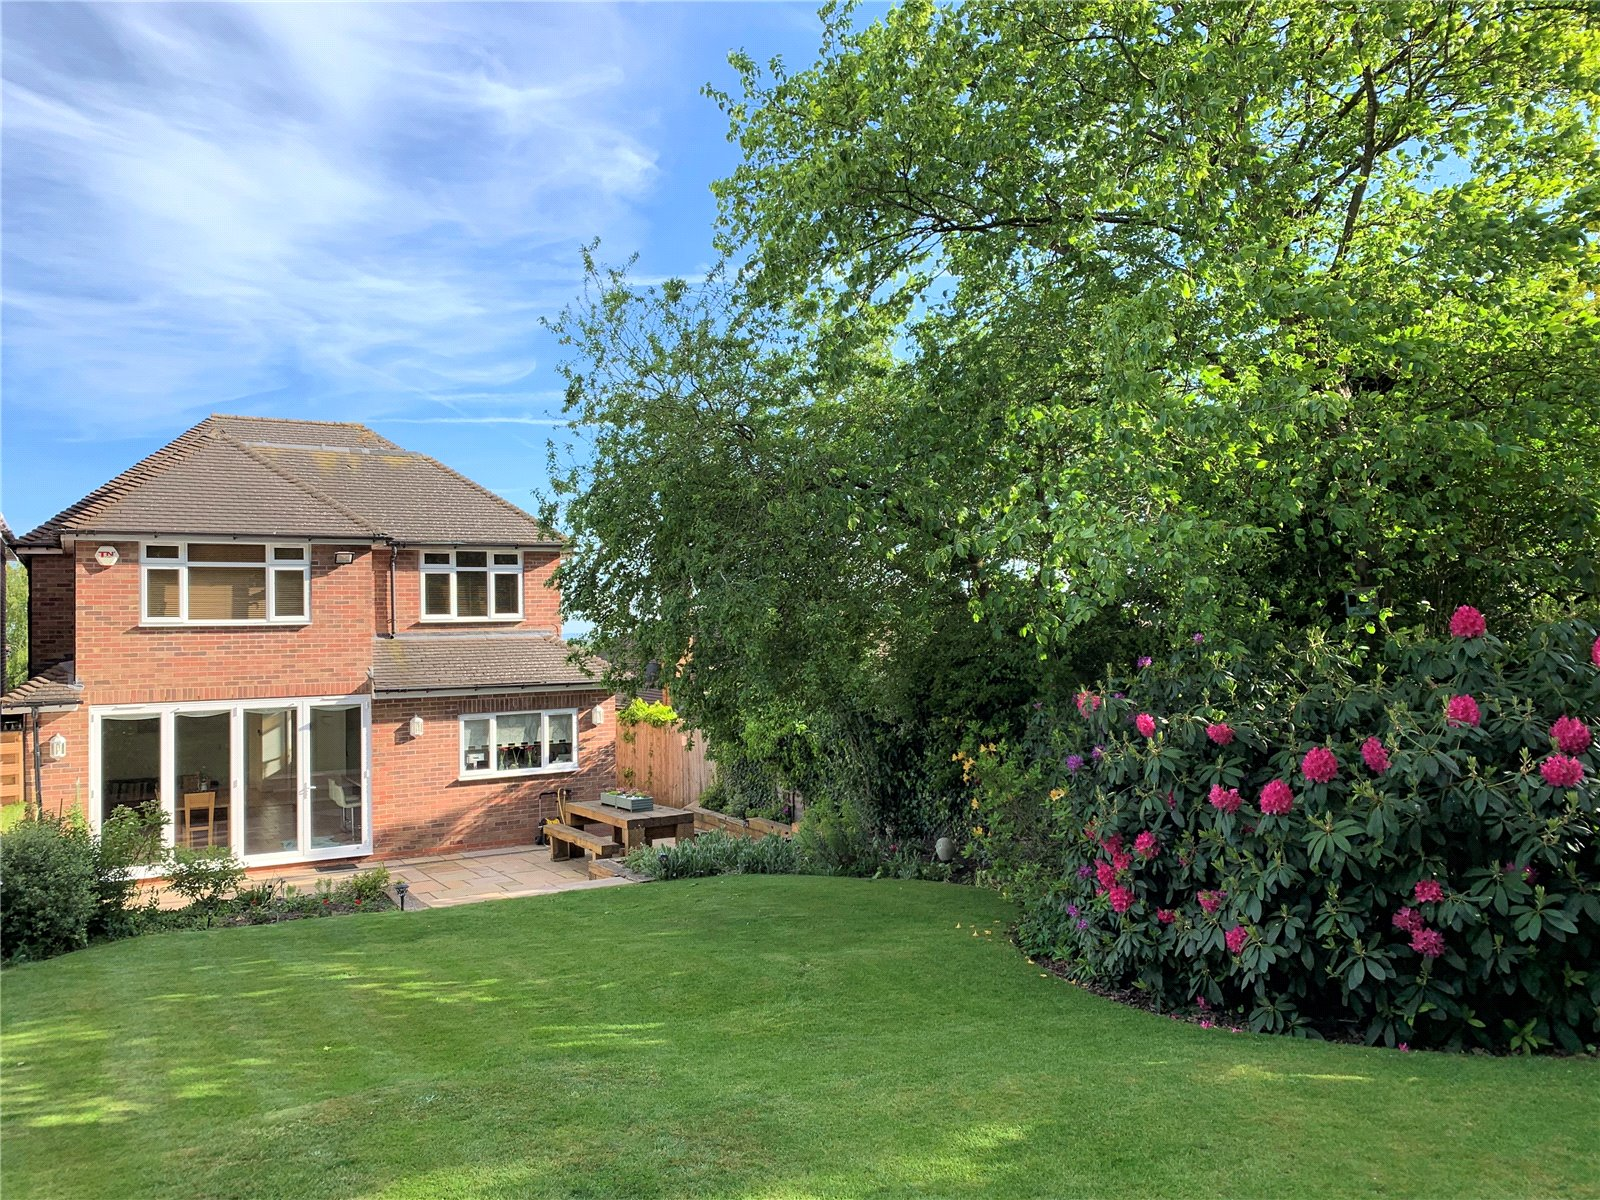 4 bed house for sale in Stanmore, HA7 3AZ  - Property Image 13